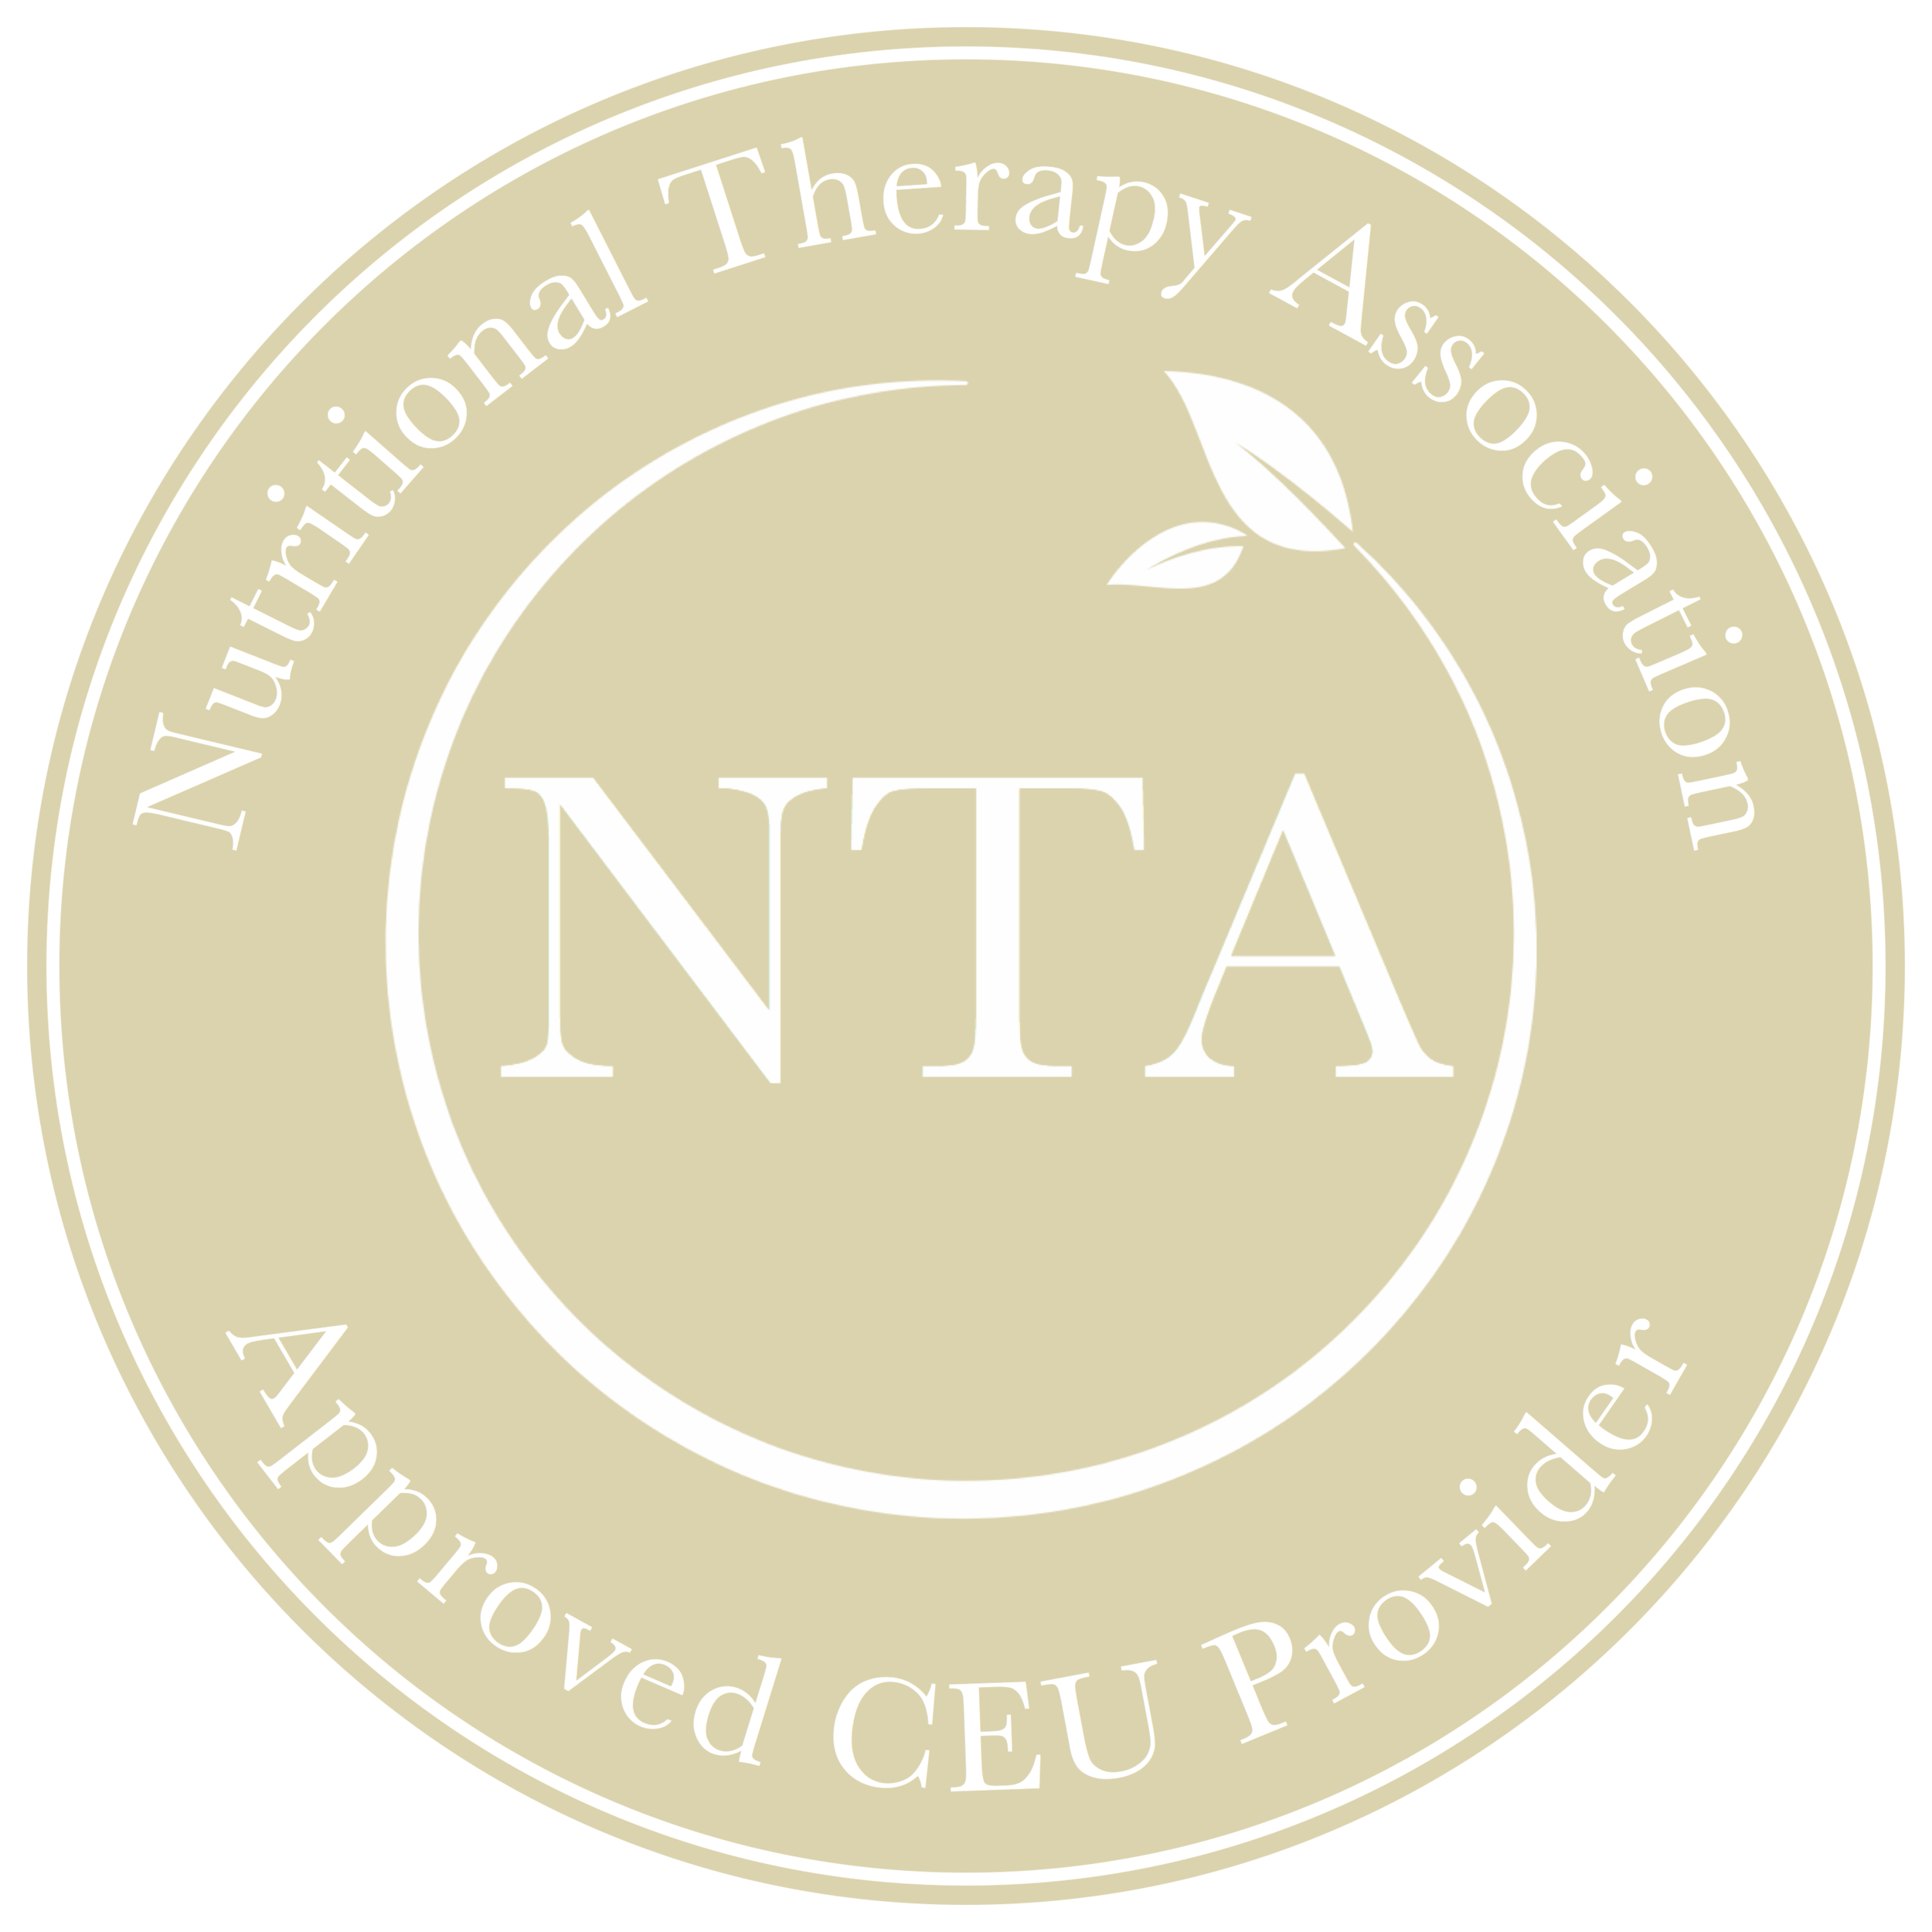 Foundations in Western Herbalism approved for 24 CEU credits by the Nutritional Therapy Association